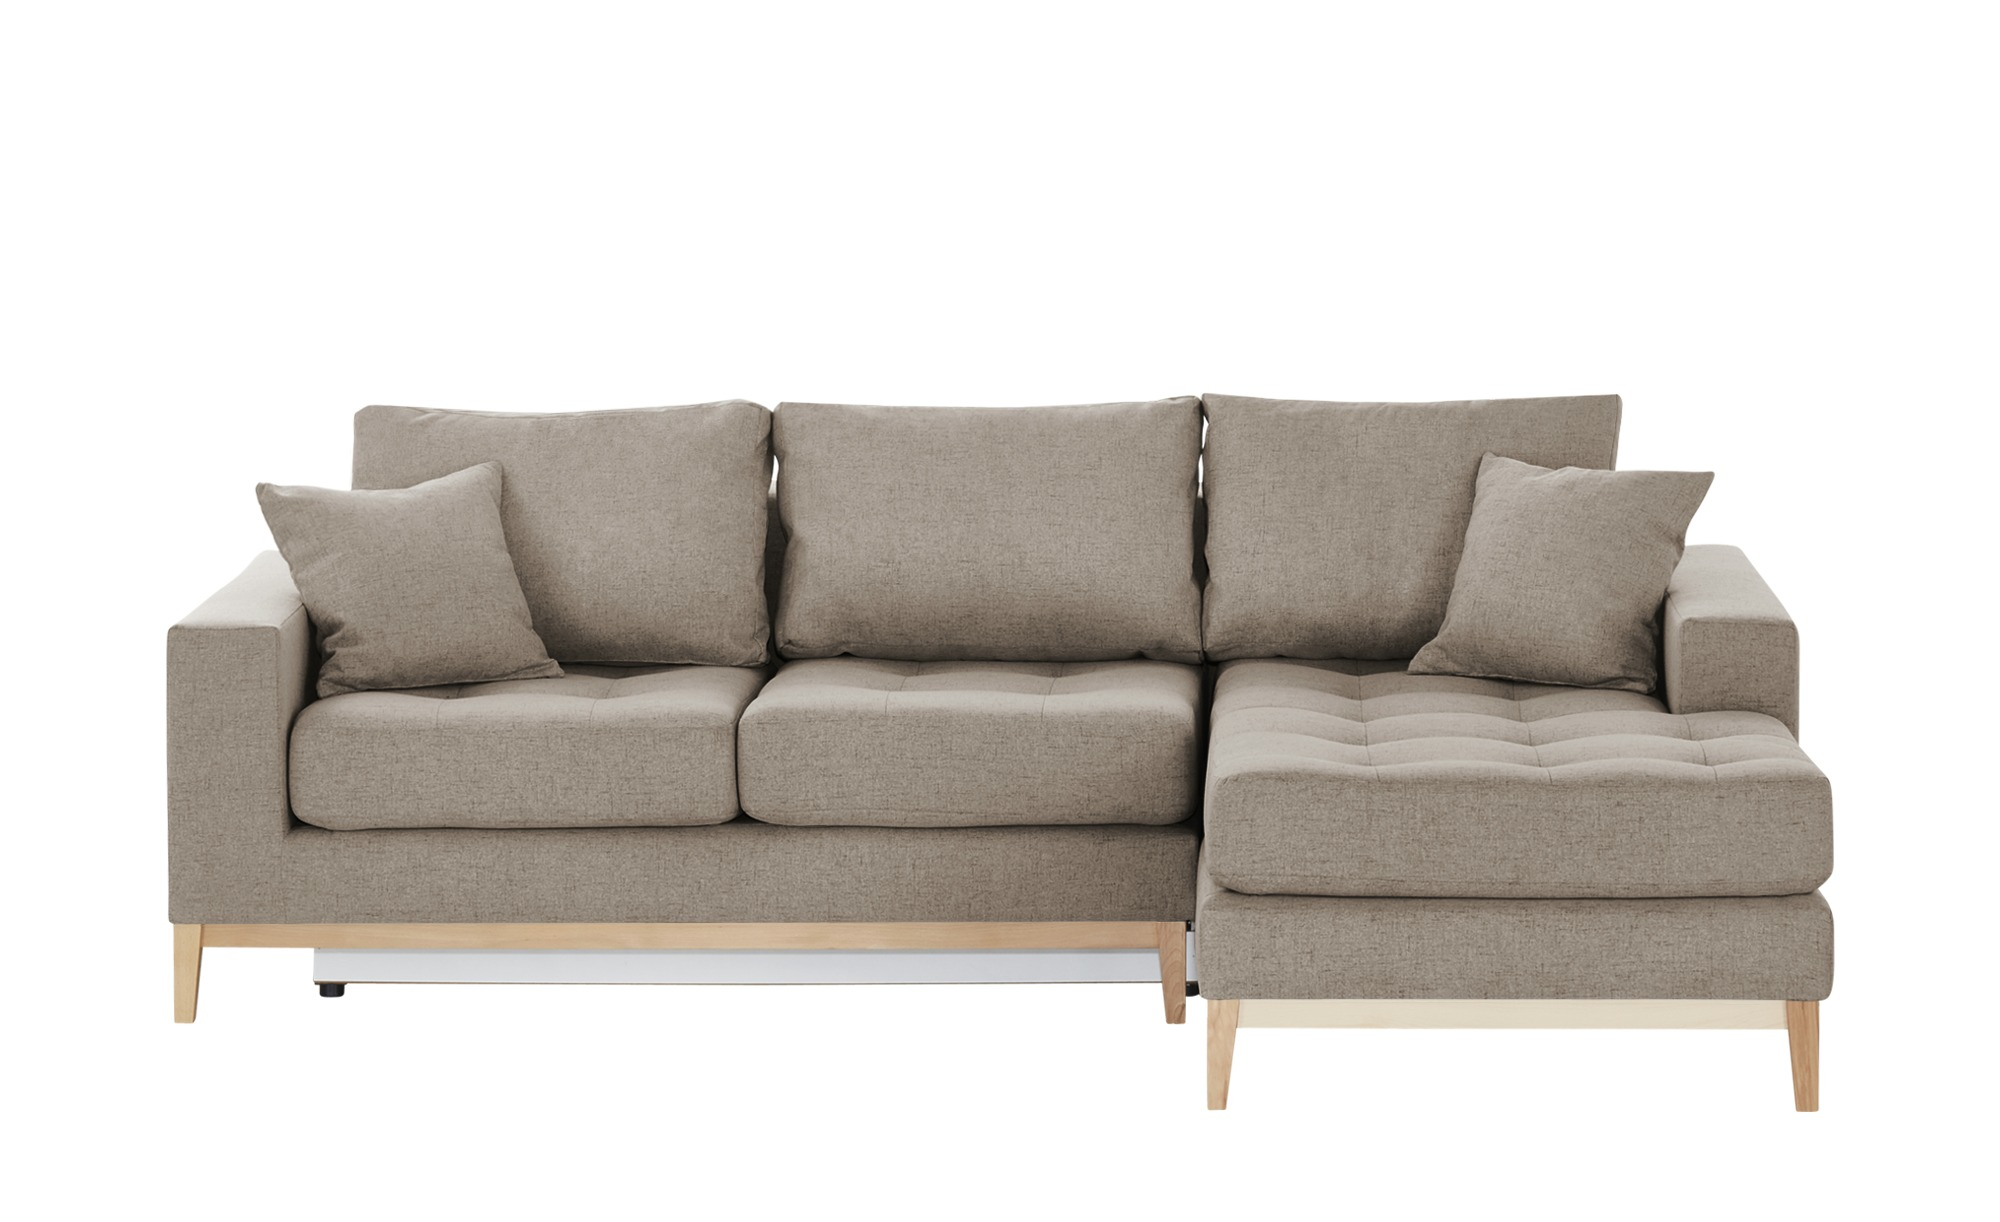 Actona Ecksofa Norwich Pin By Ladendirekt On Sofas Couches Sofa Couch Corner Sofa